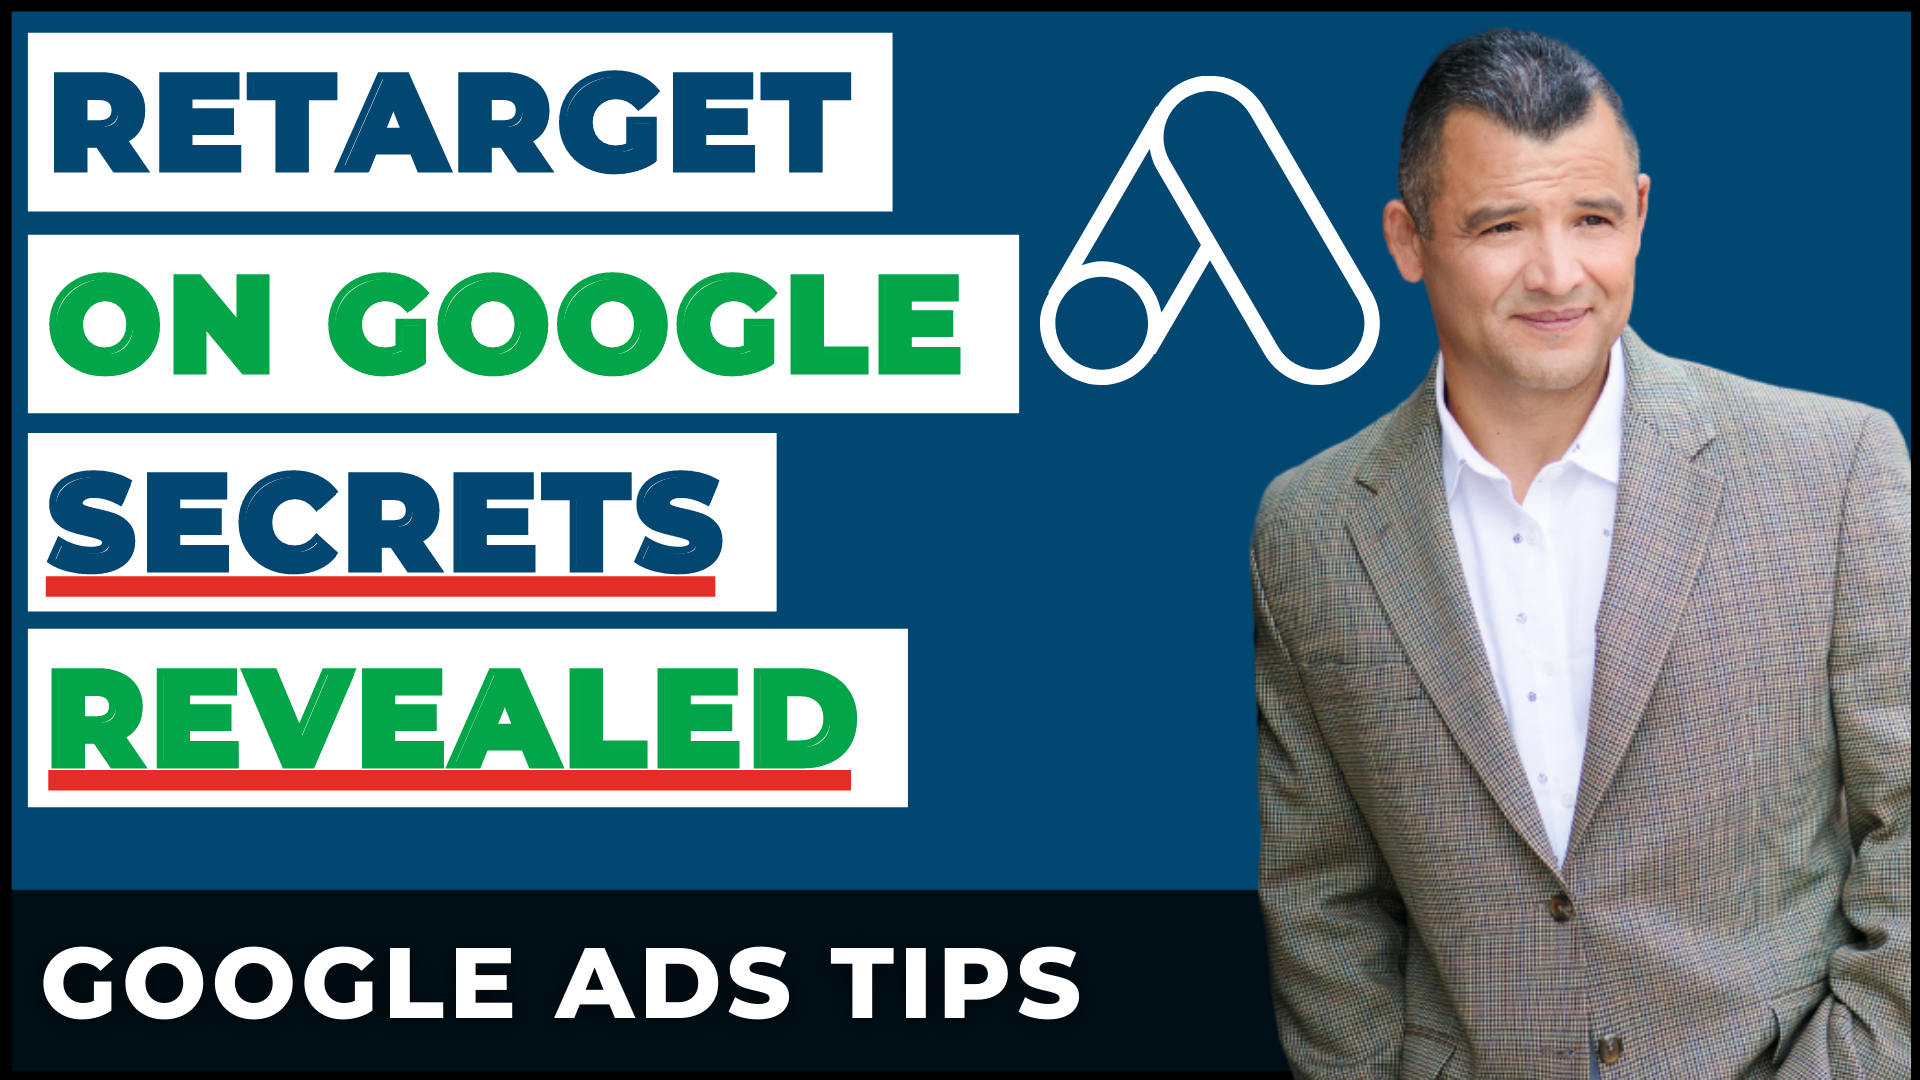 The Secrets On How To Retarget On Google